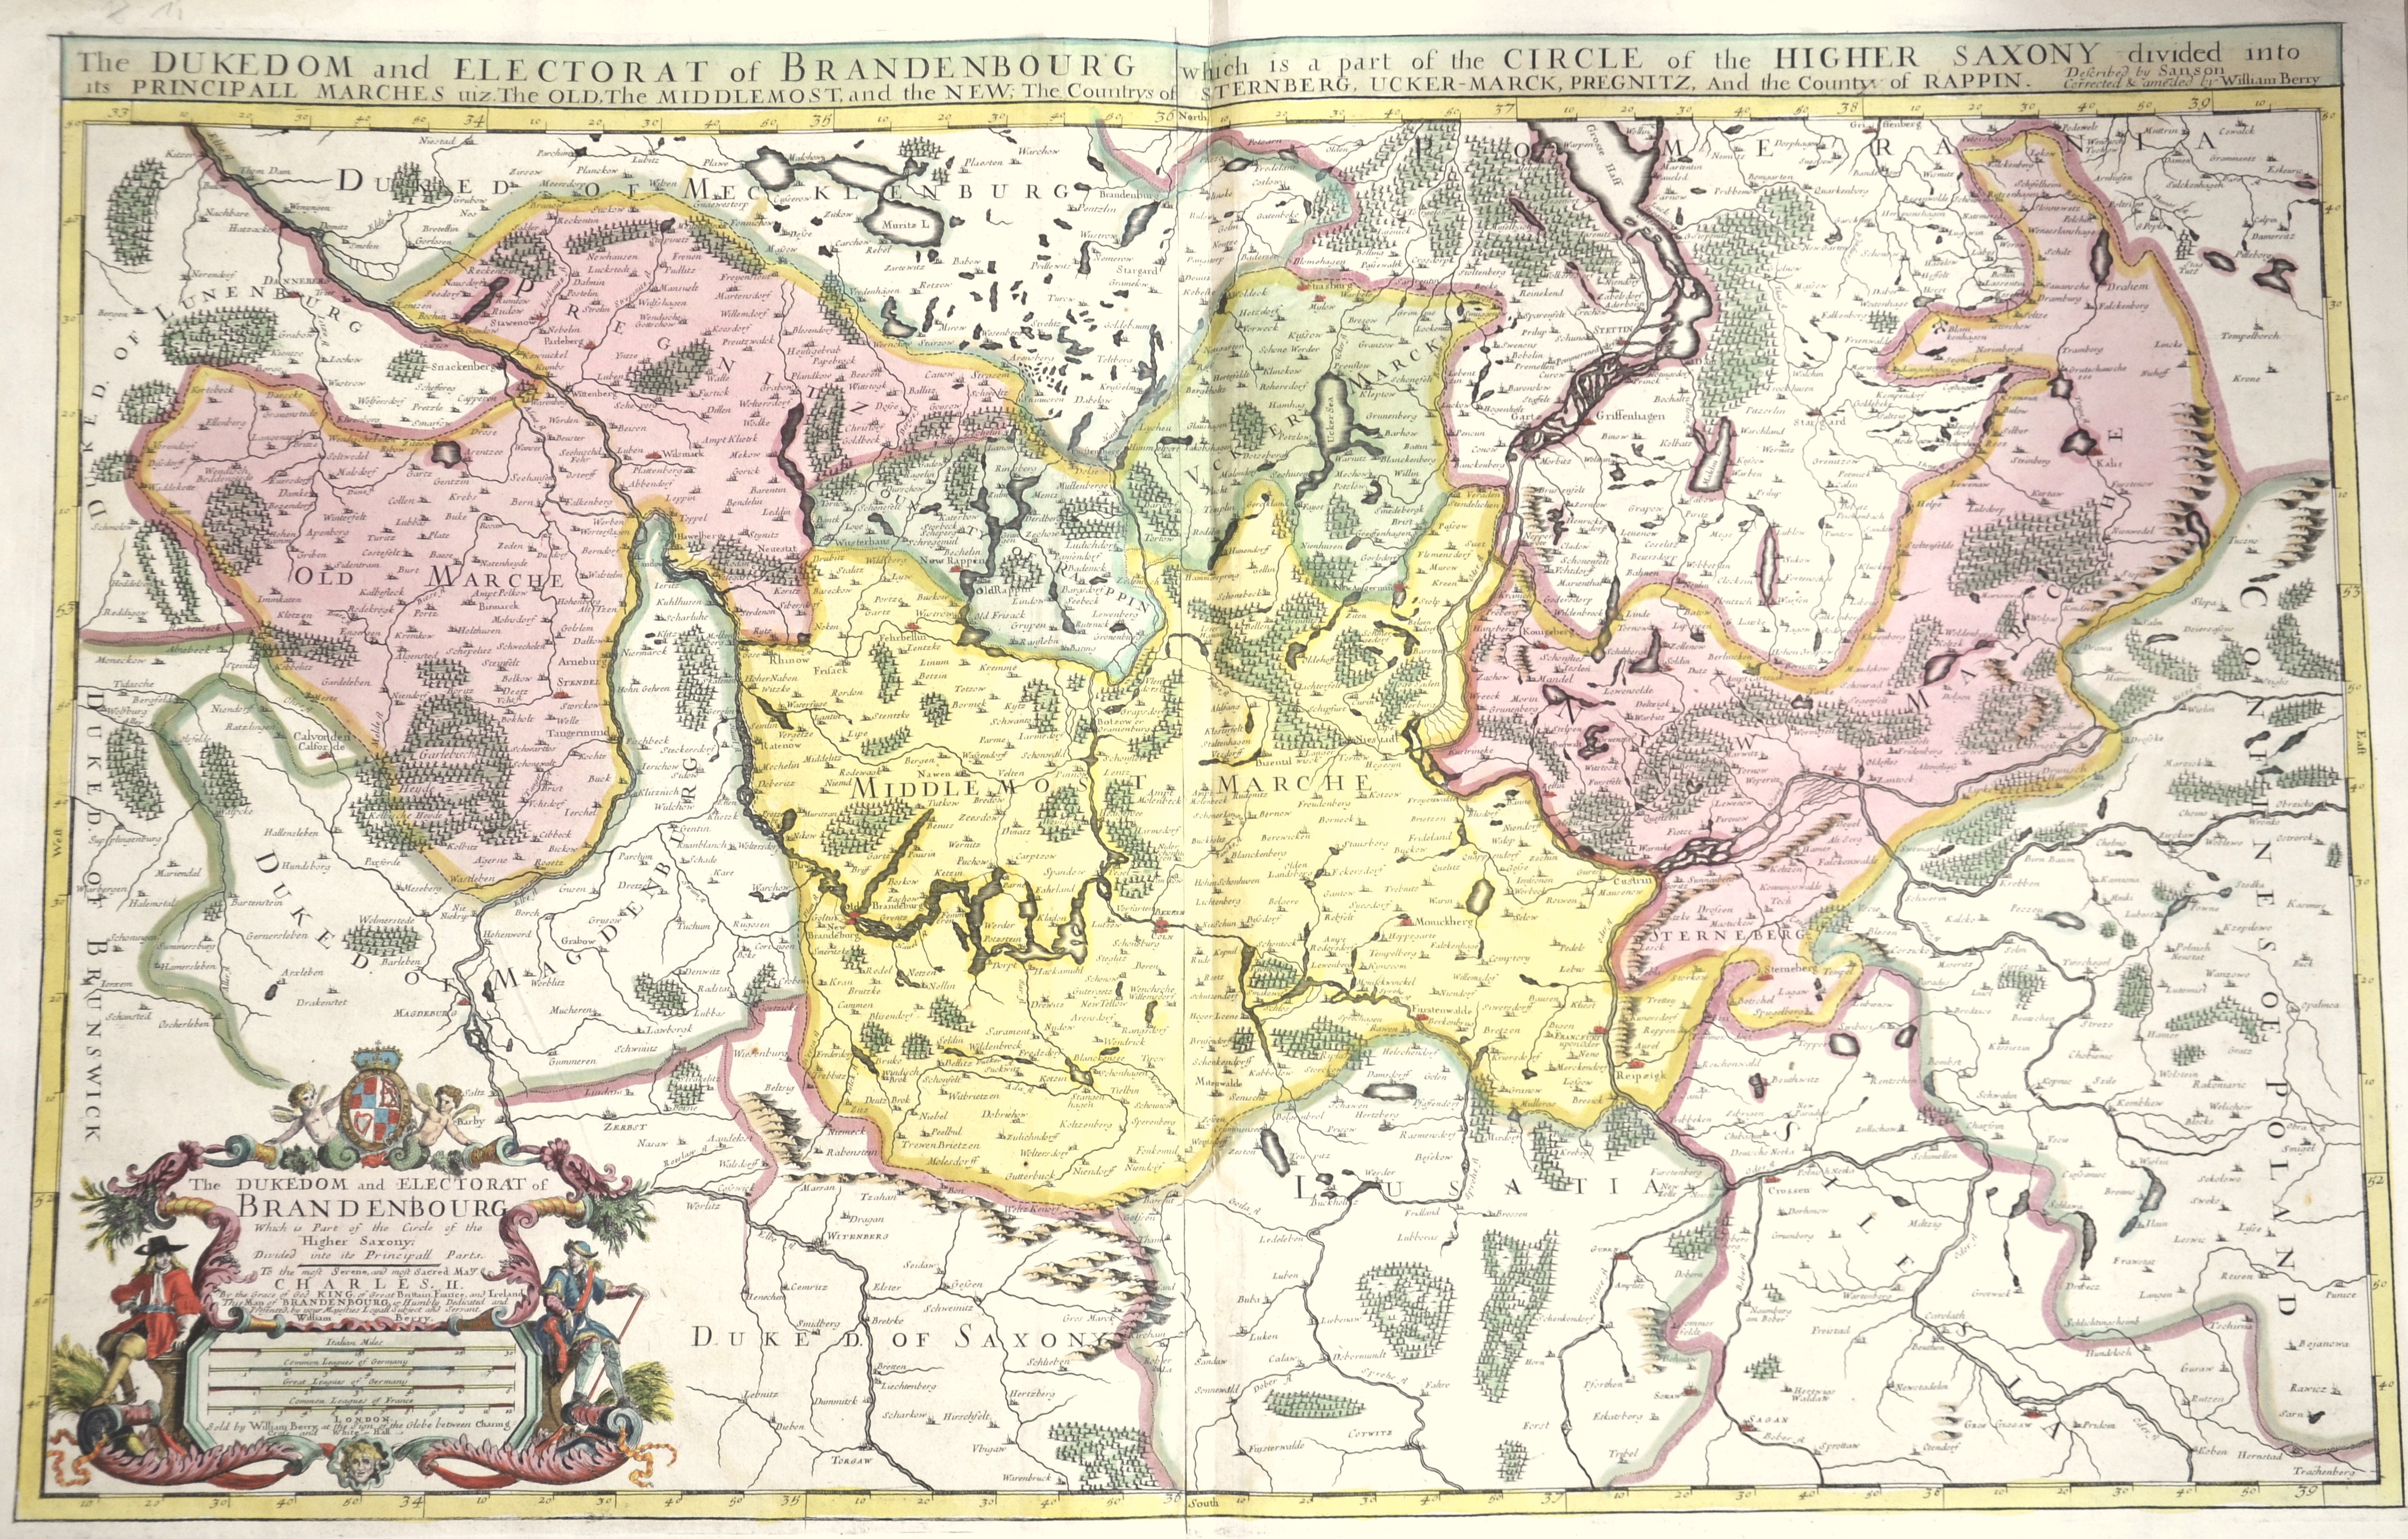 Berry W. The Dukedom and Electorat of Brandenbourg which is a part of the Circle of the Higher Saxony…